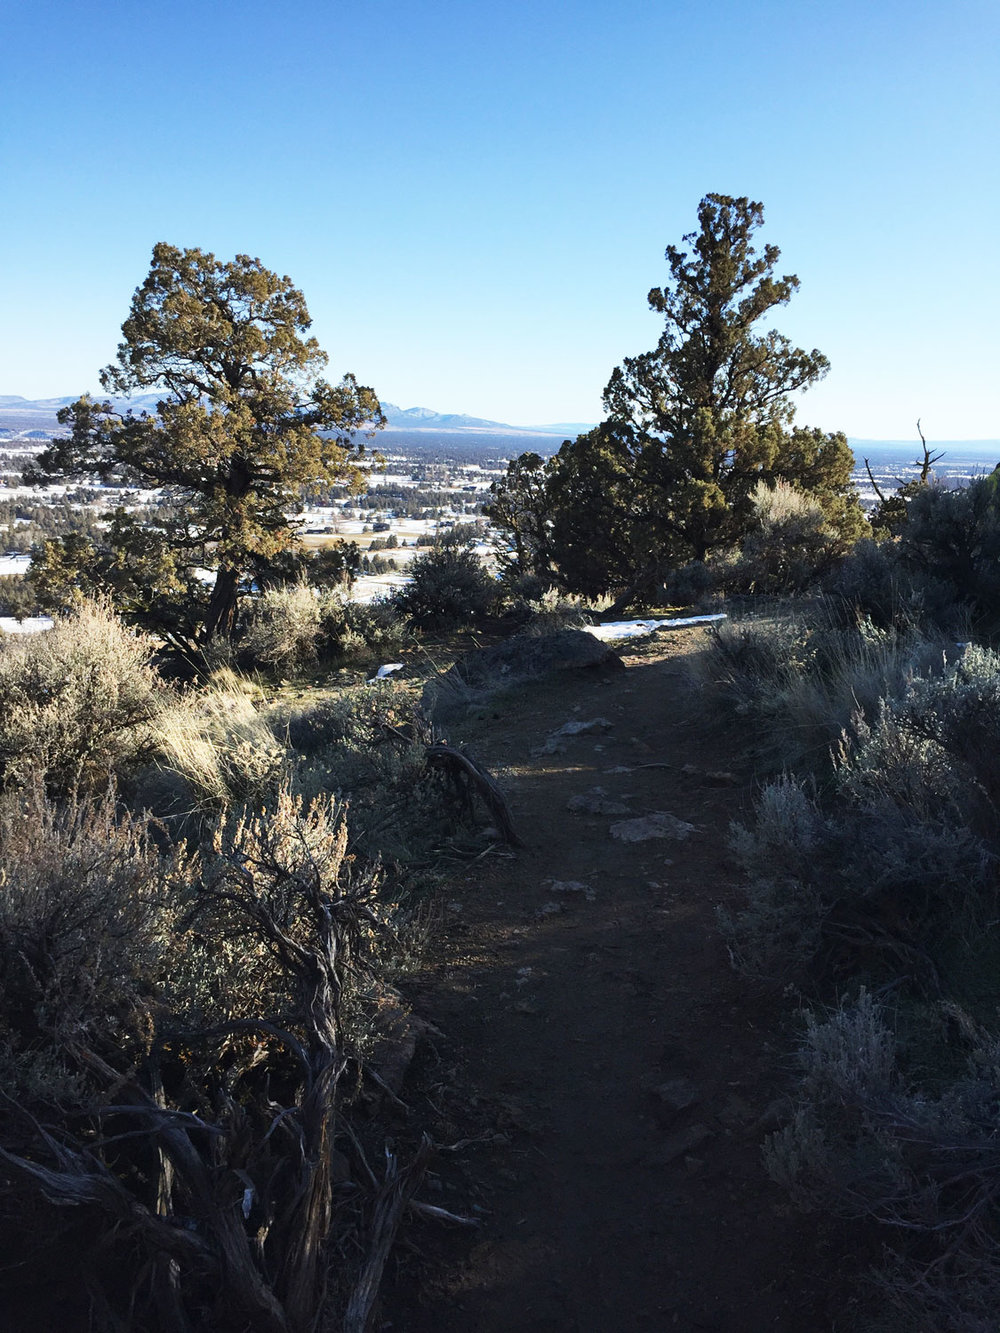 More views of the Crooked River and houses below along the Misery Ridge Trail at Smith Rock State Park.